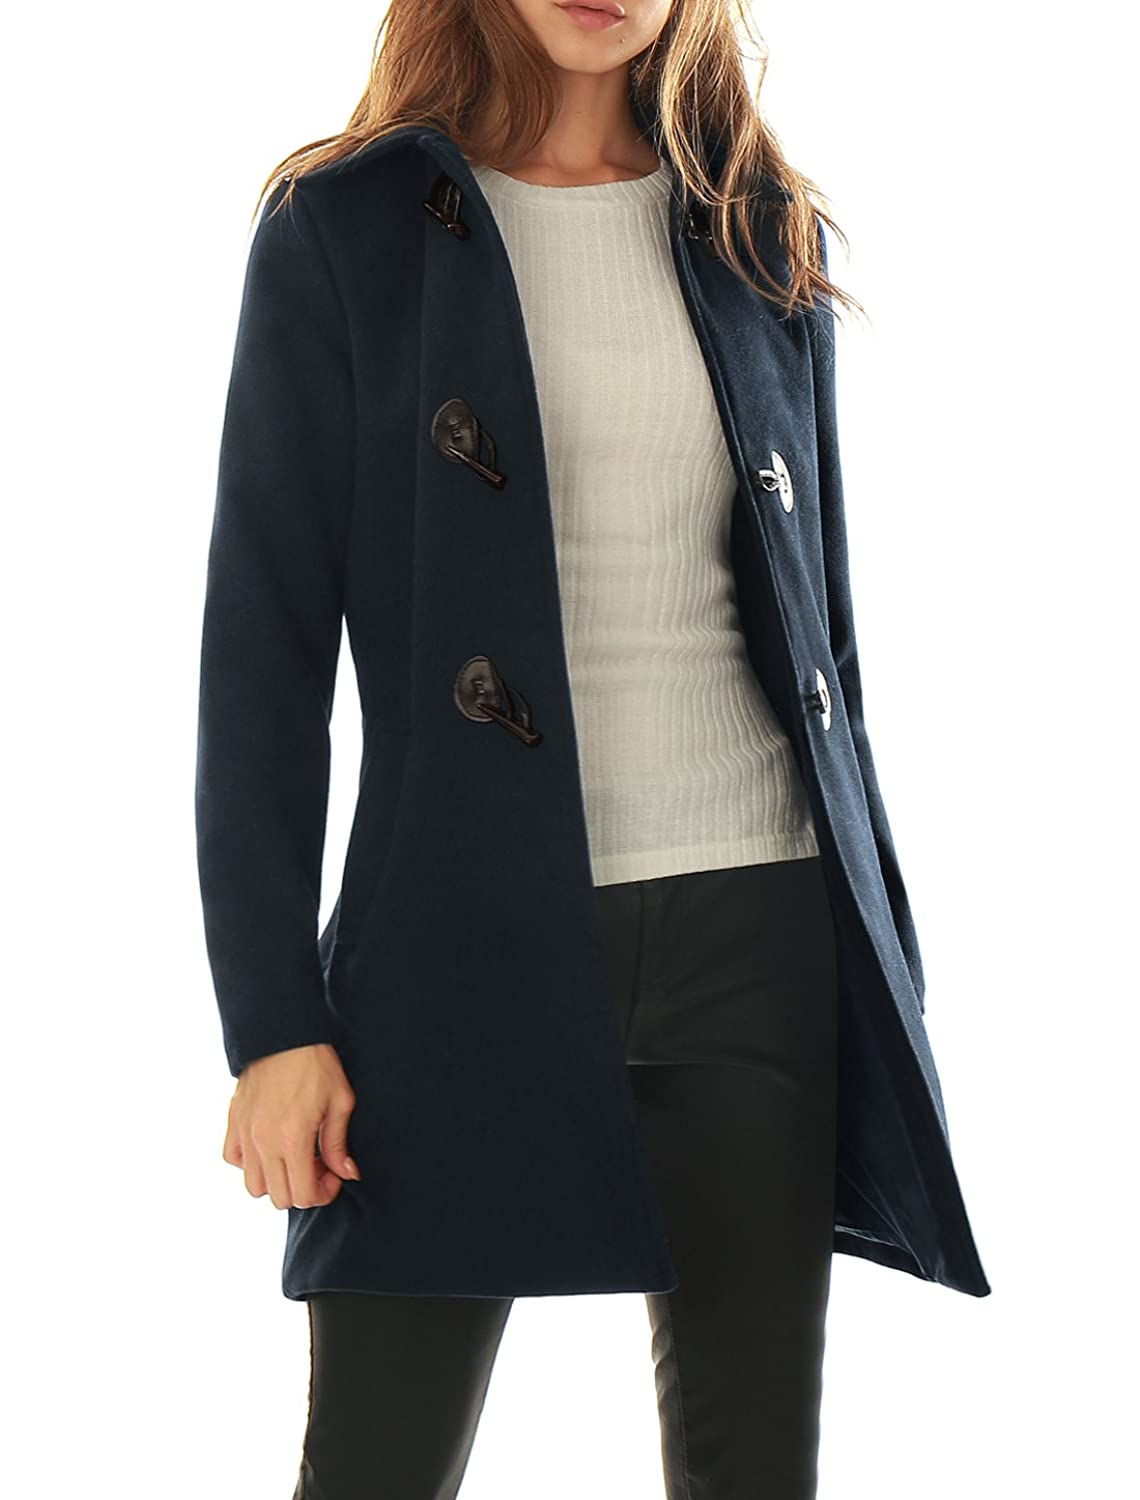 Allegra K Women's Turn Down Collar Slant Pockets Toggle Coat Blue S